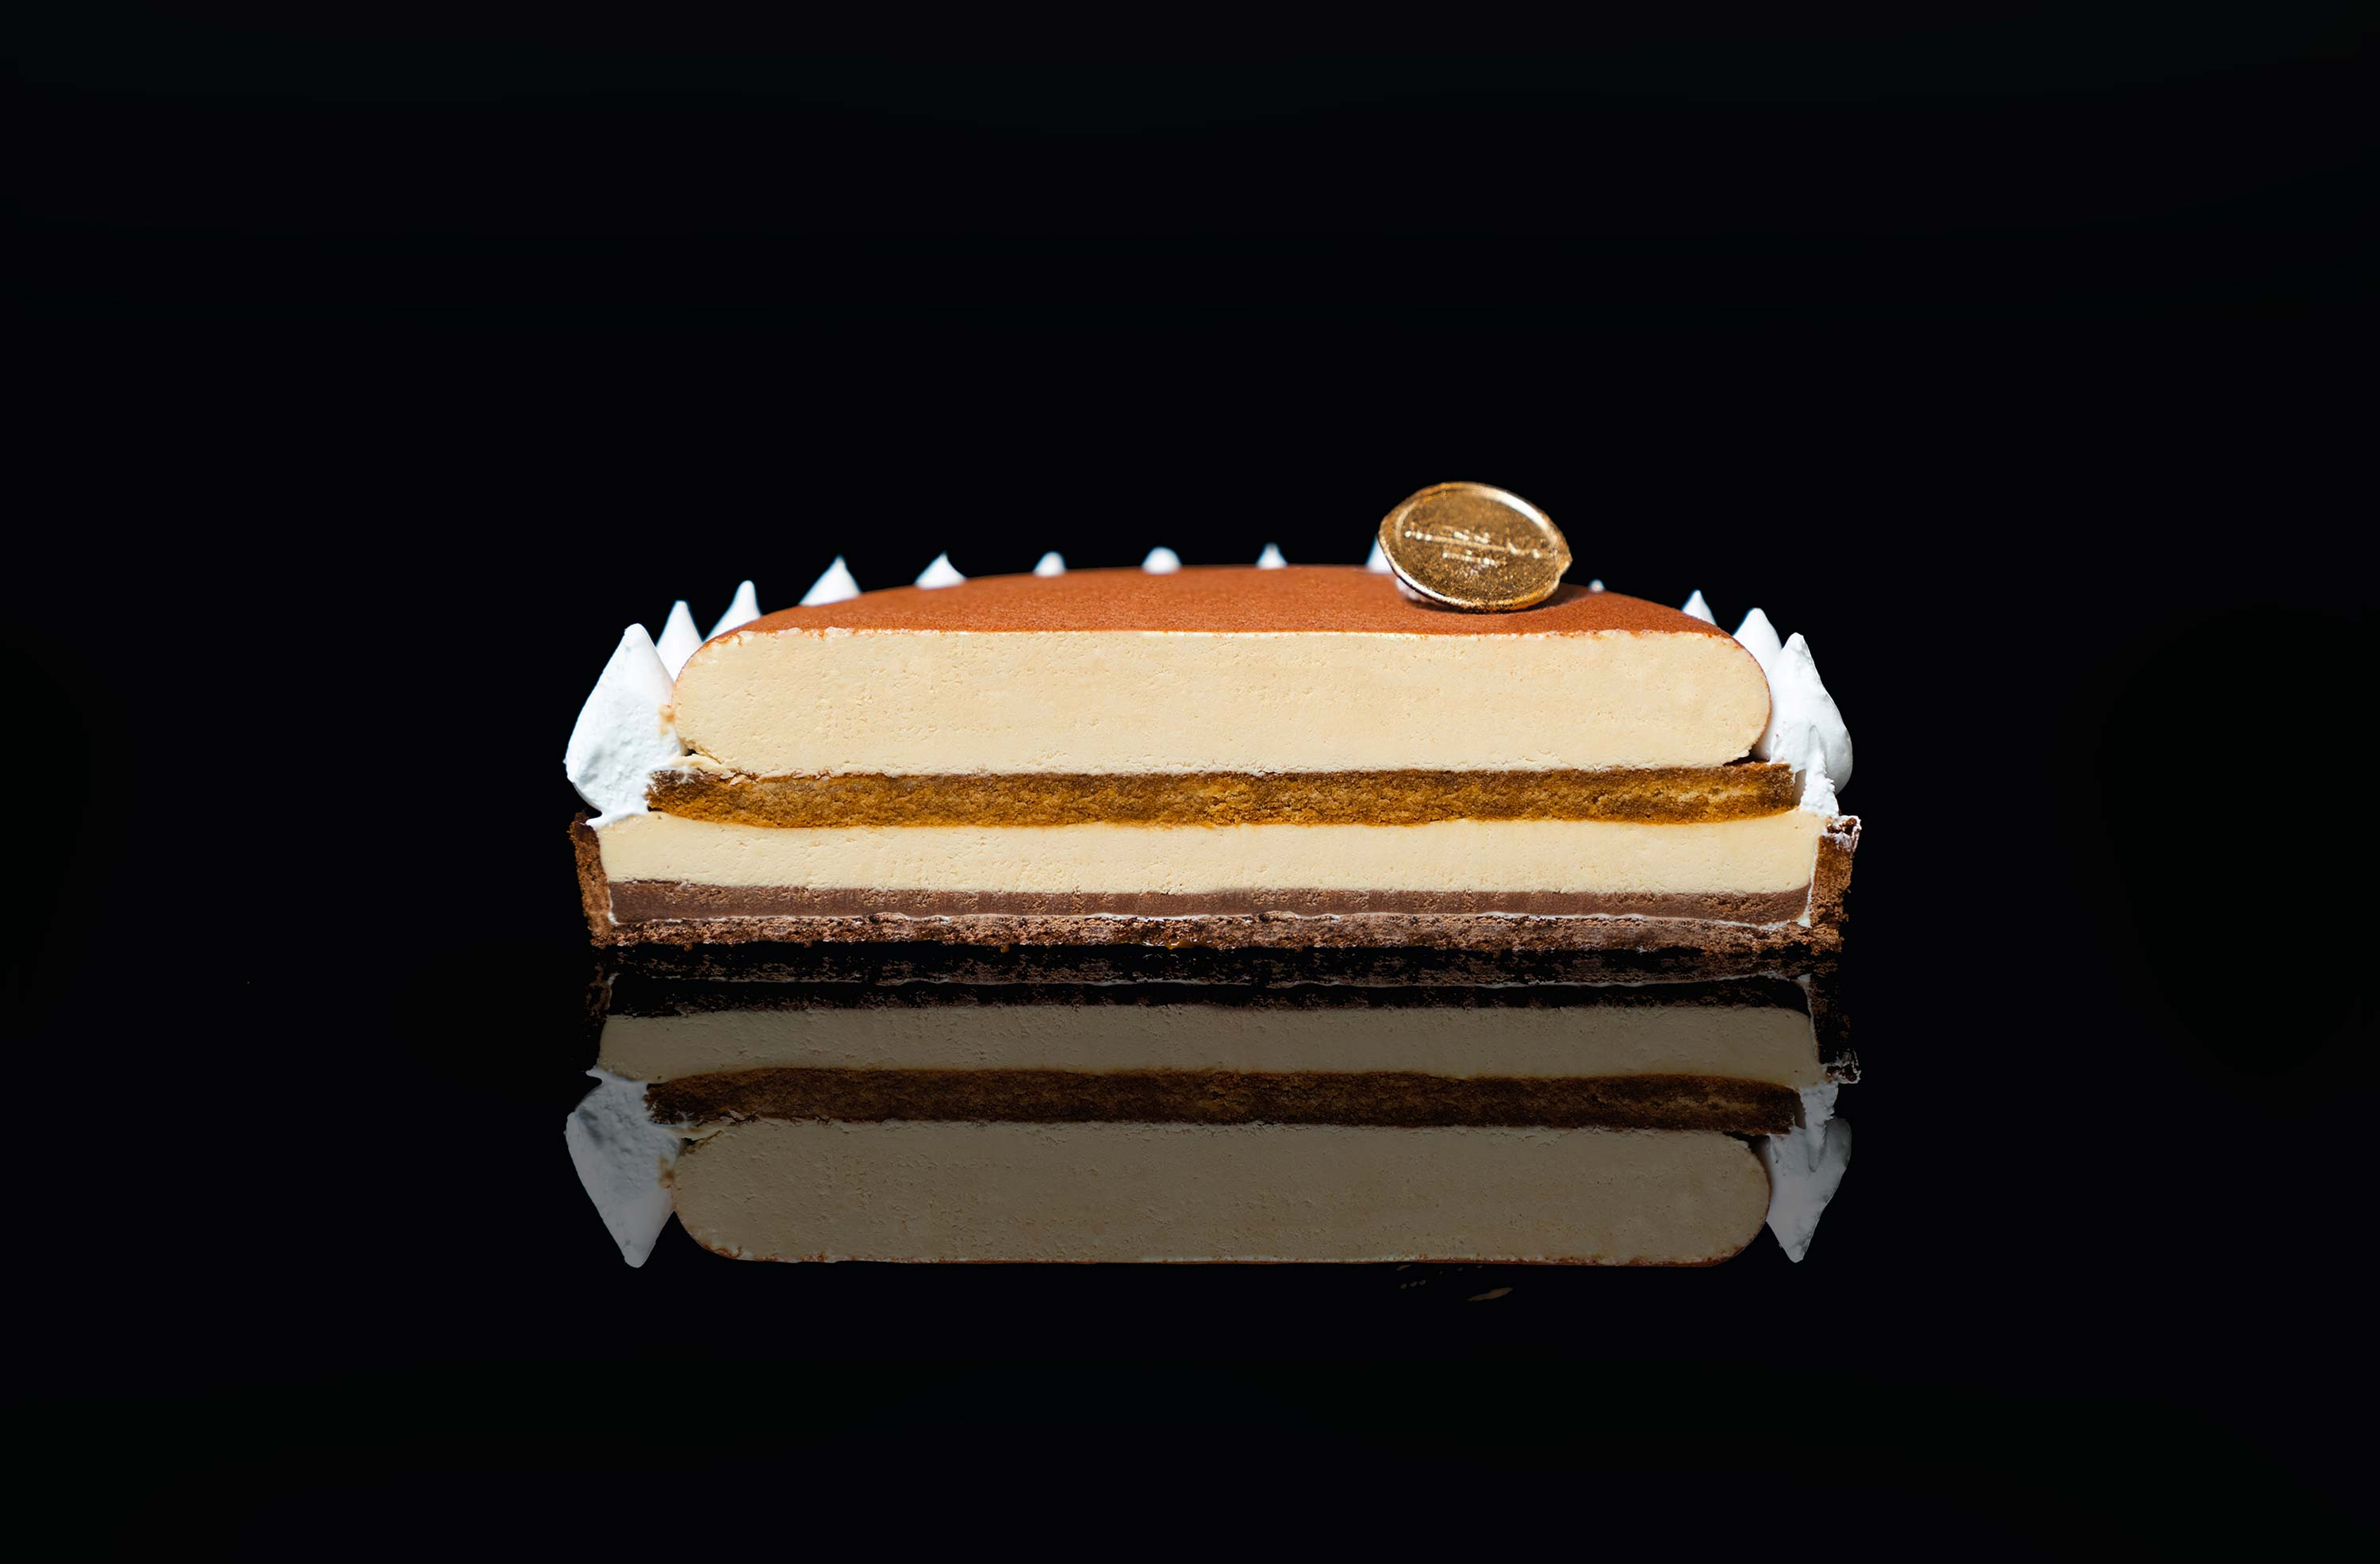 Tiramisu Tart by Gelato Messina